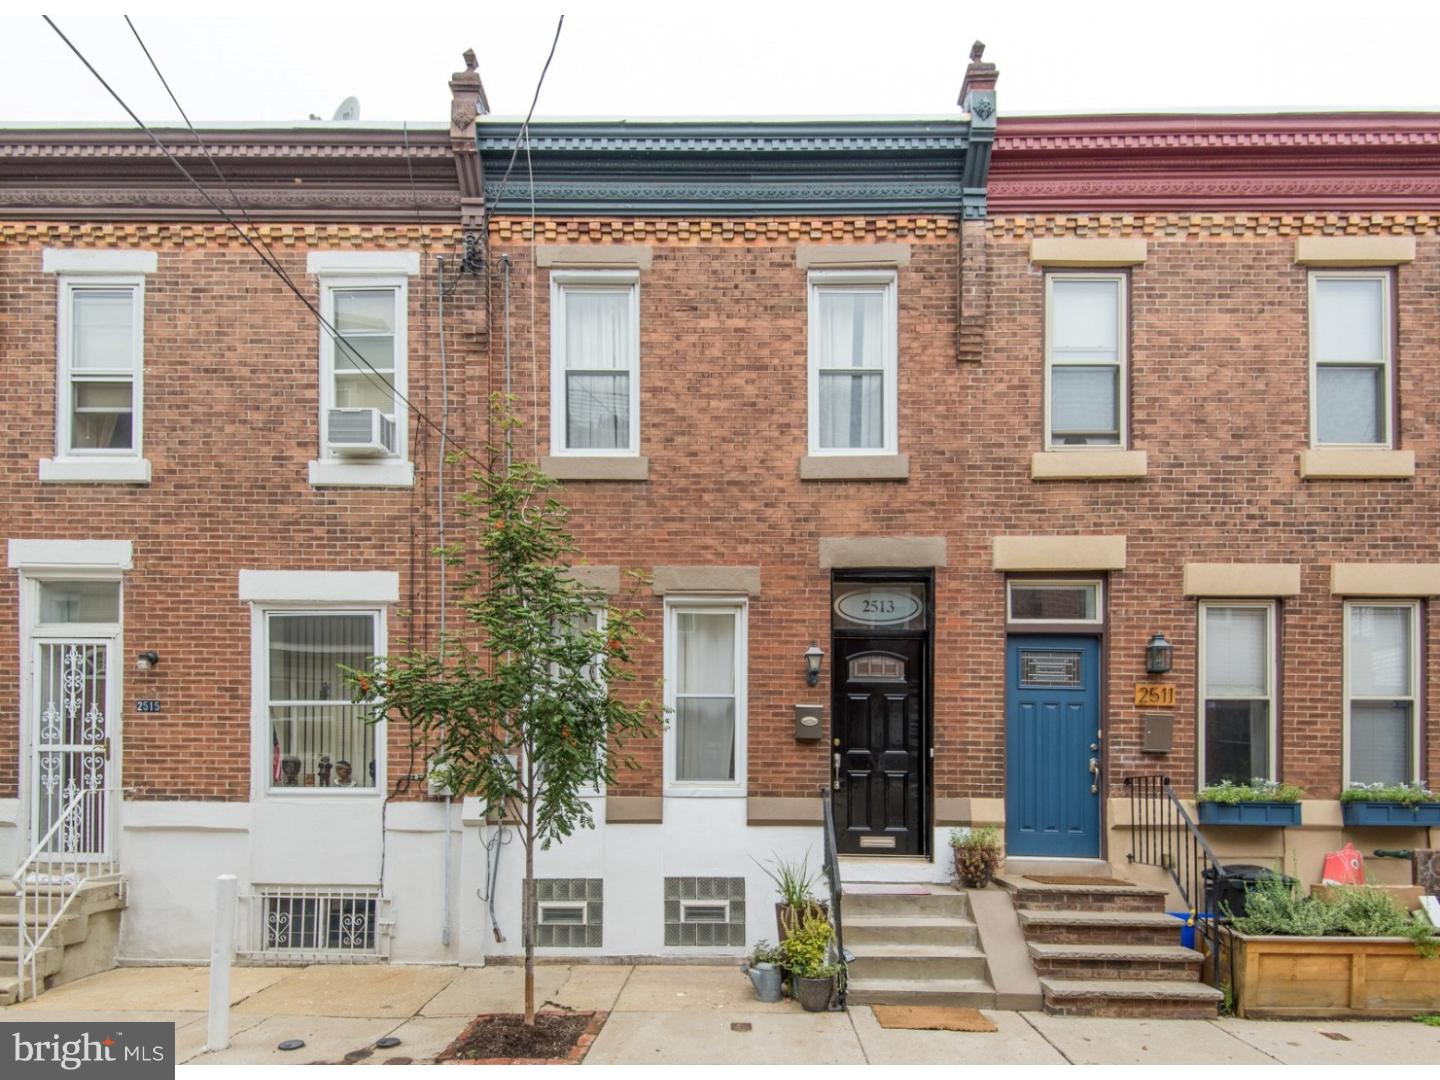 Philadelphia | 2 Bedroom(s) Residential $355,000 MLS# 7251061 ...